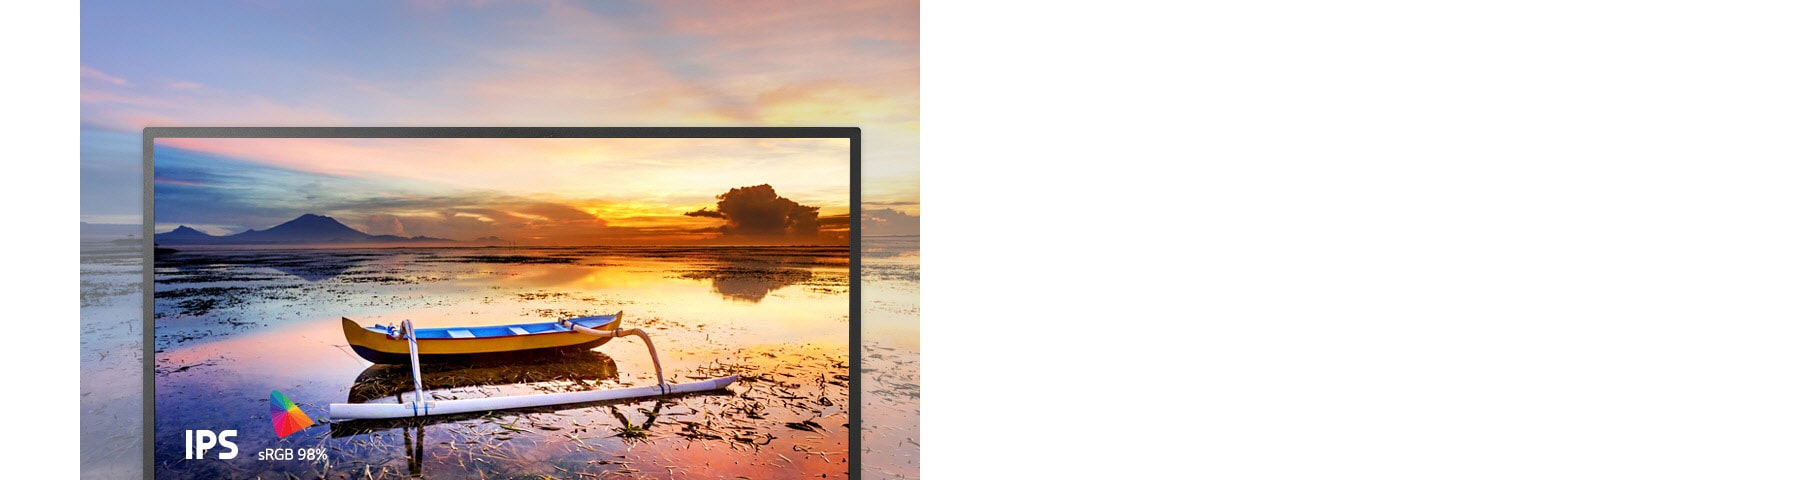 Screen display with a boat on a lake overlooking the sunset